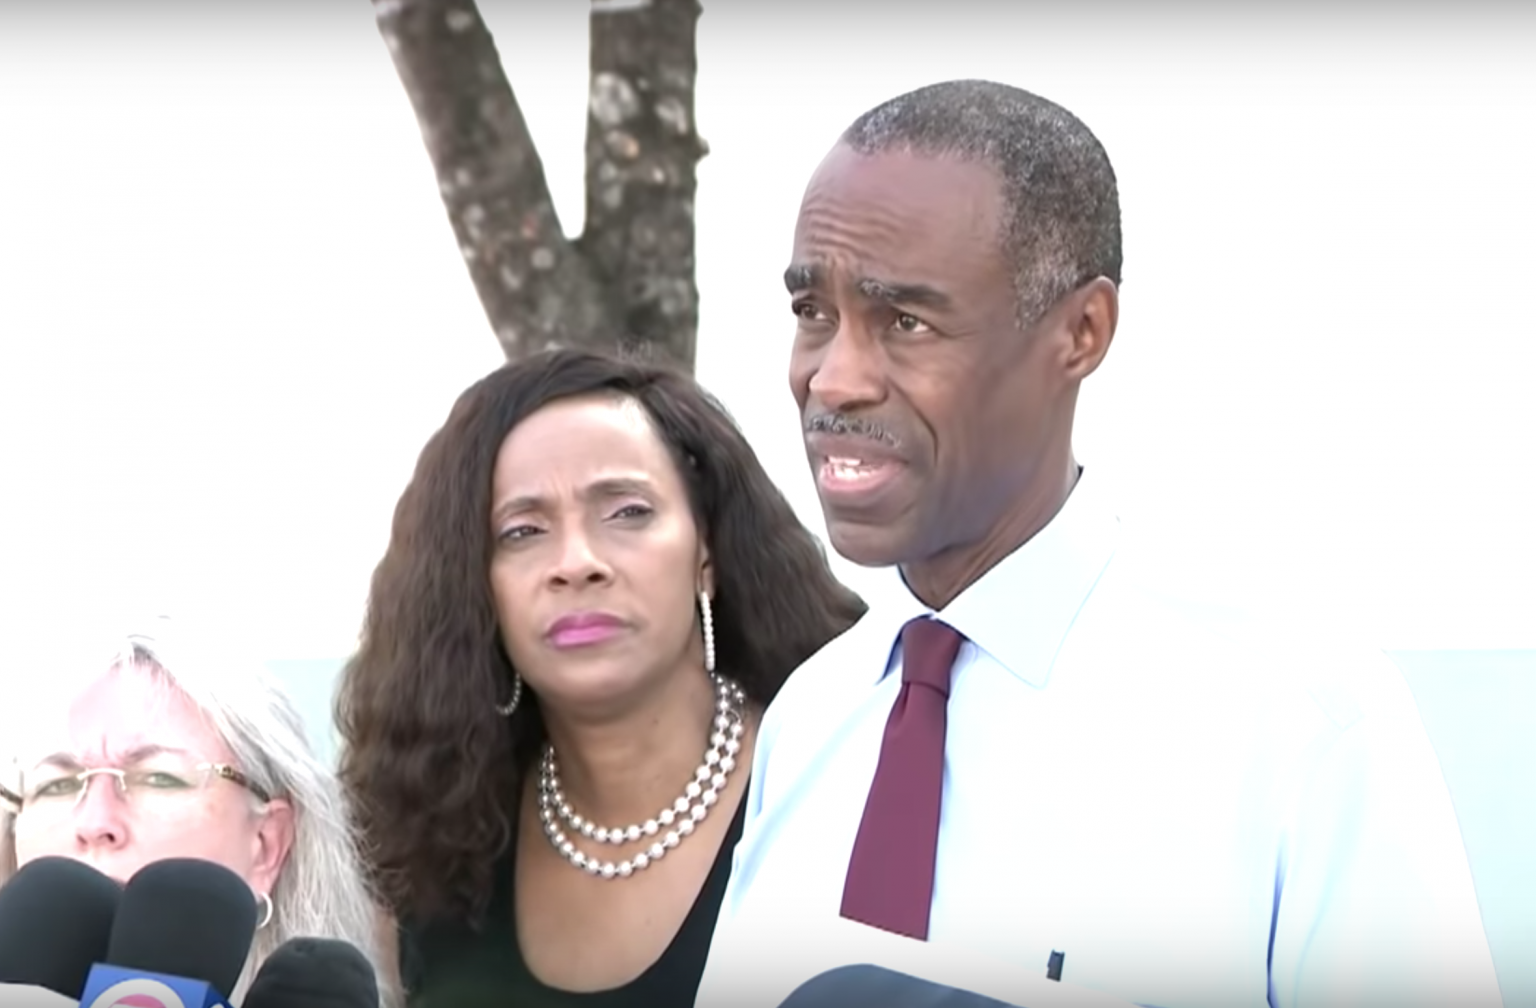 BROWARD COUNTY, FL- Robert Runcie, the Superintendent of Broward County Public Schools, is making news again. And as has been the norm for him, it is not for the right reasons.